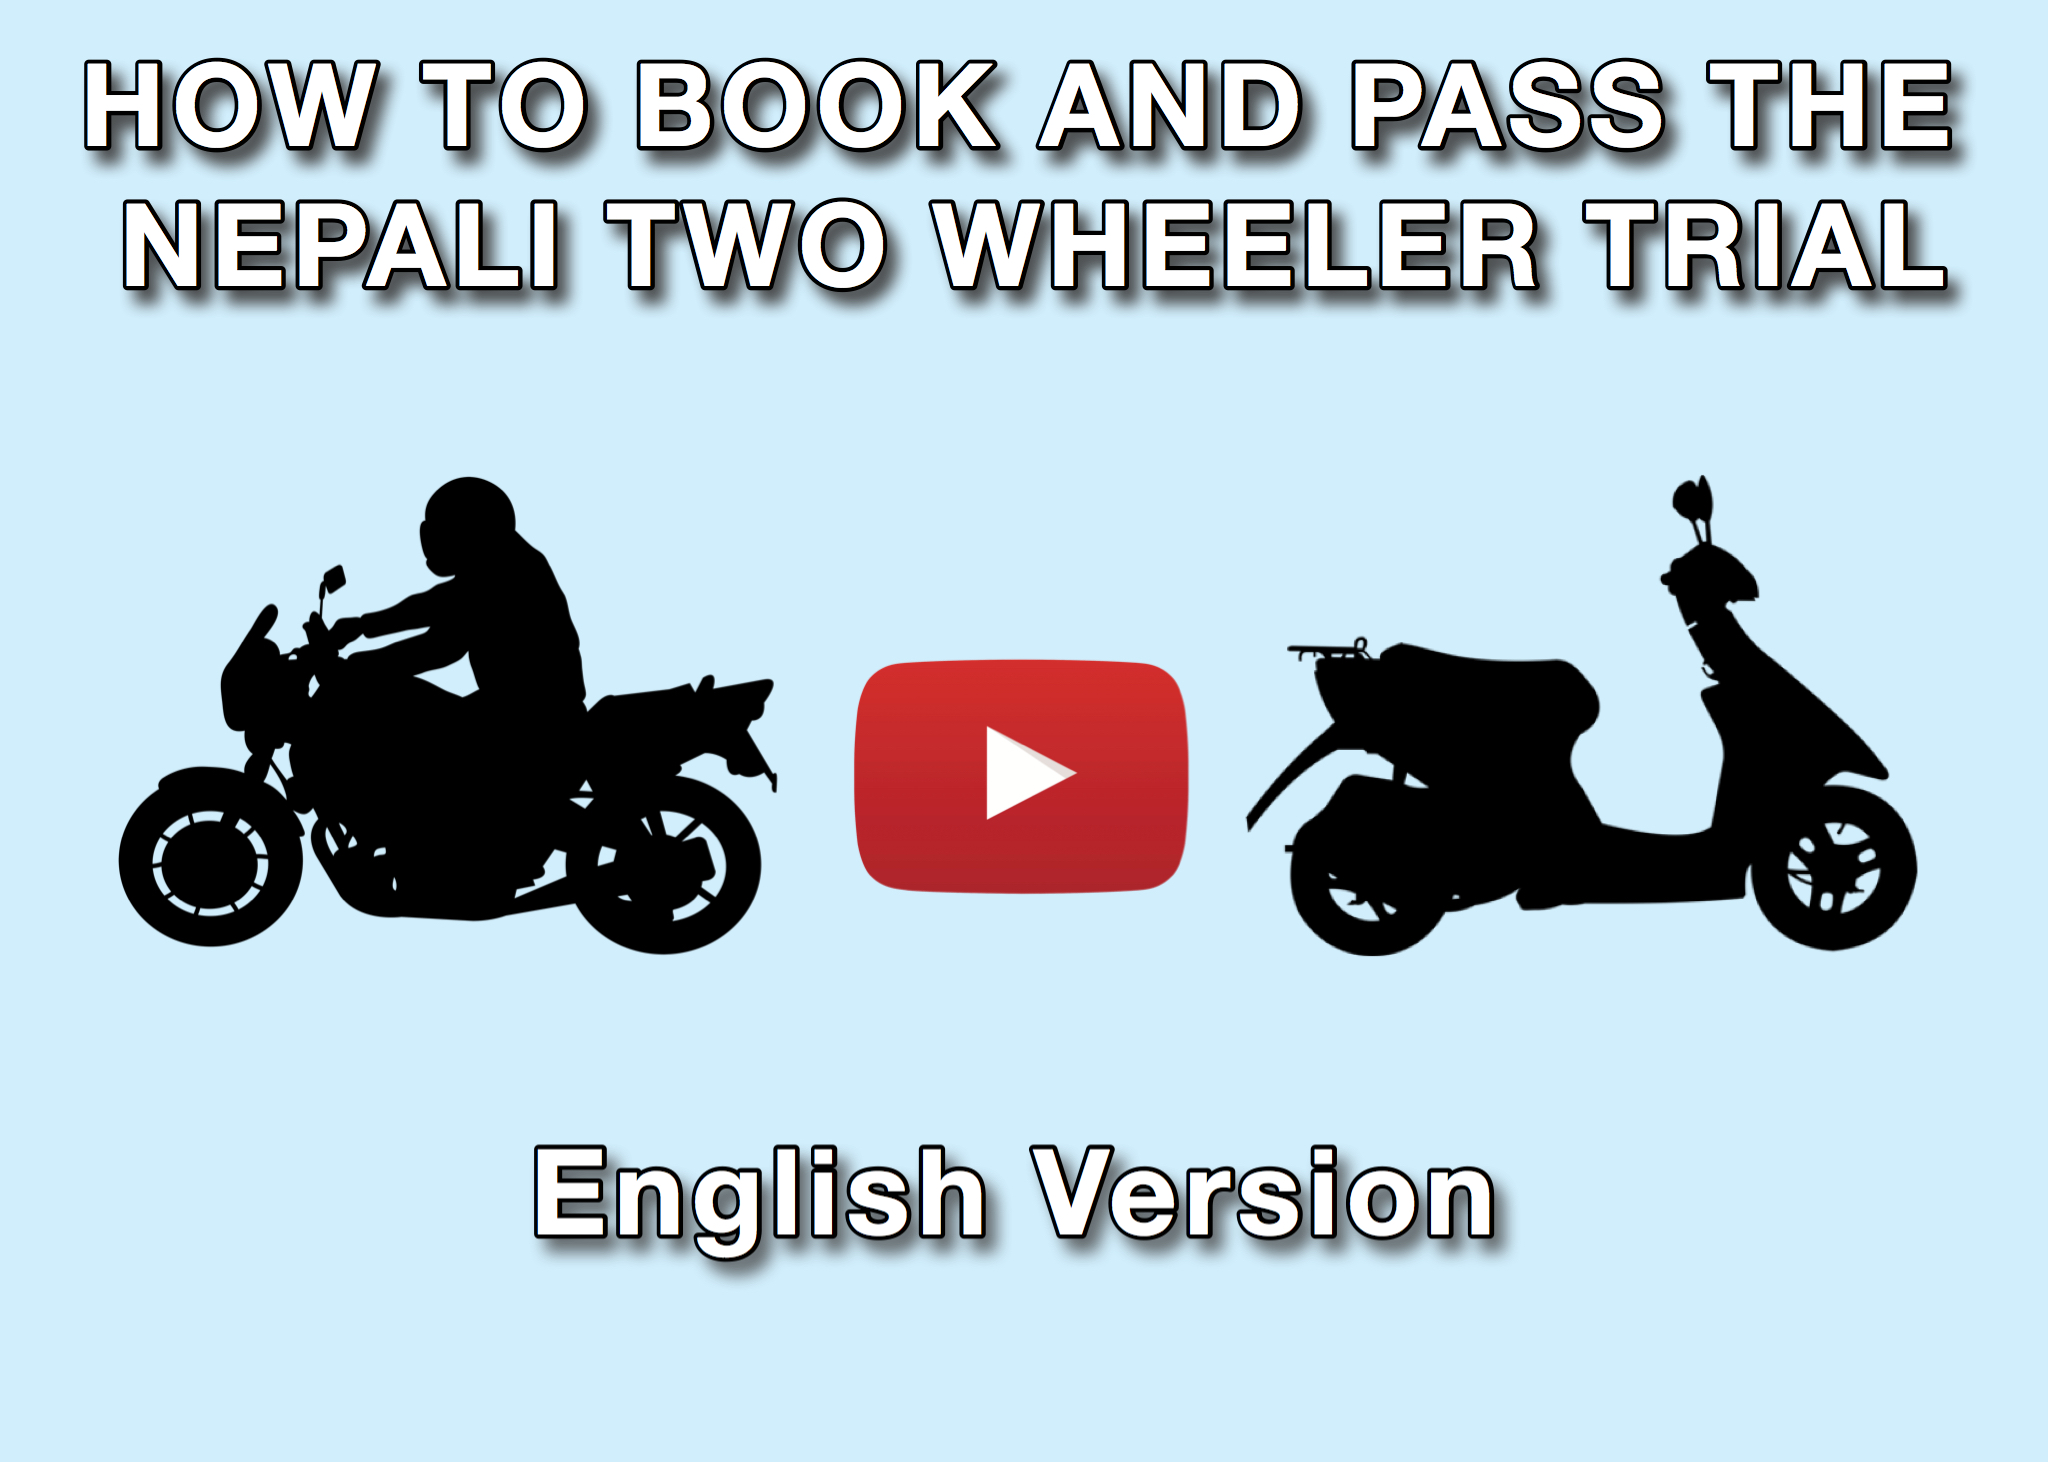 How to pass the two wheeler trial